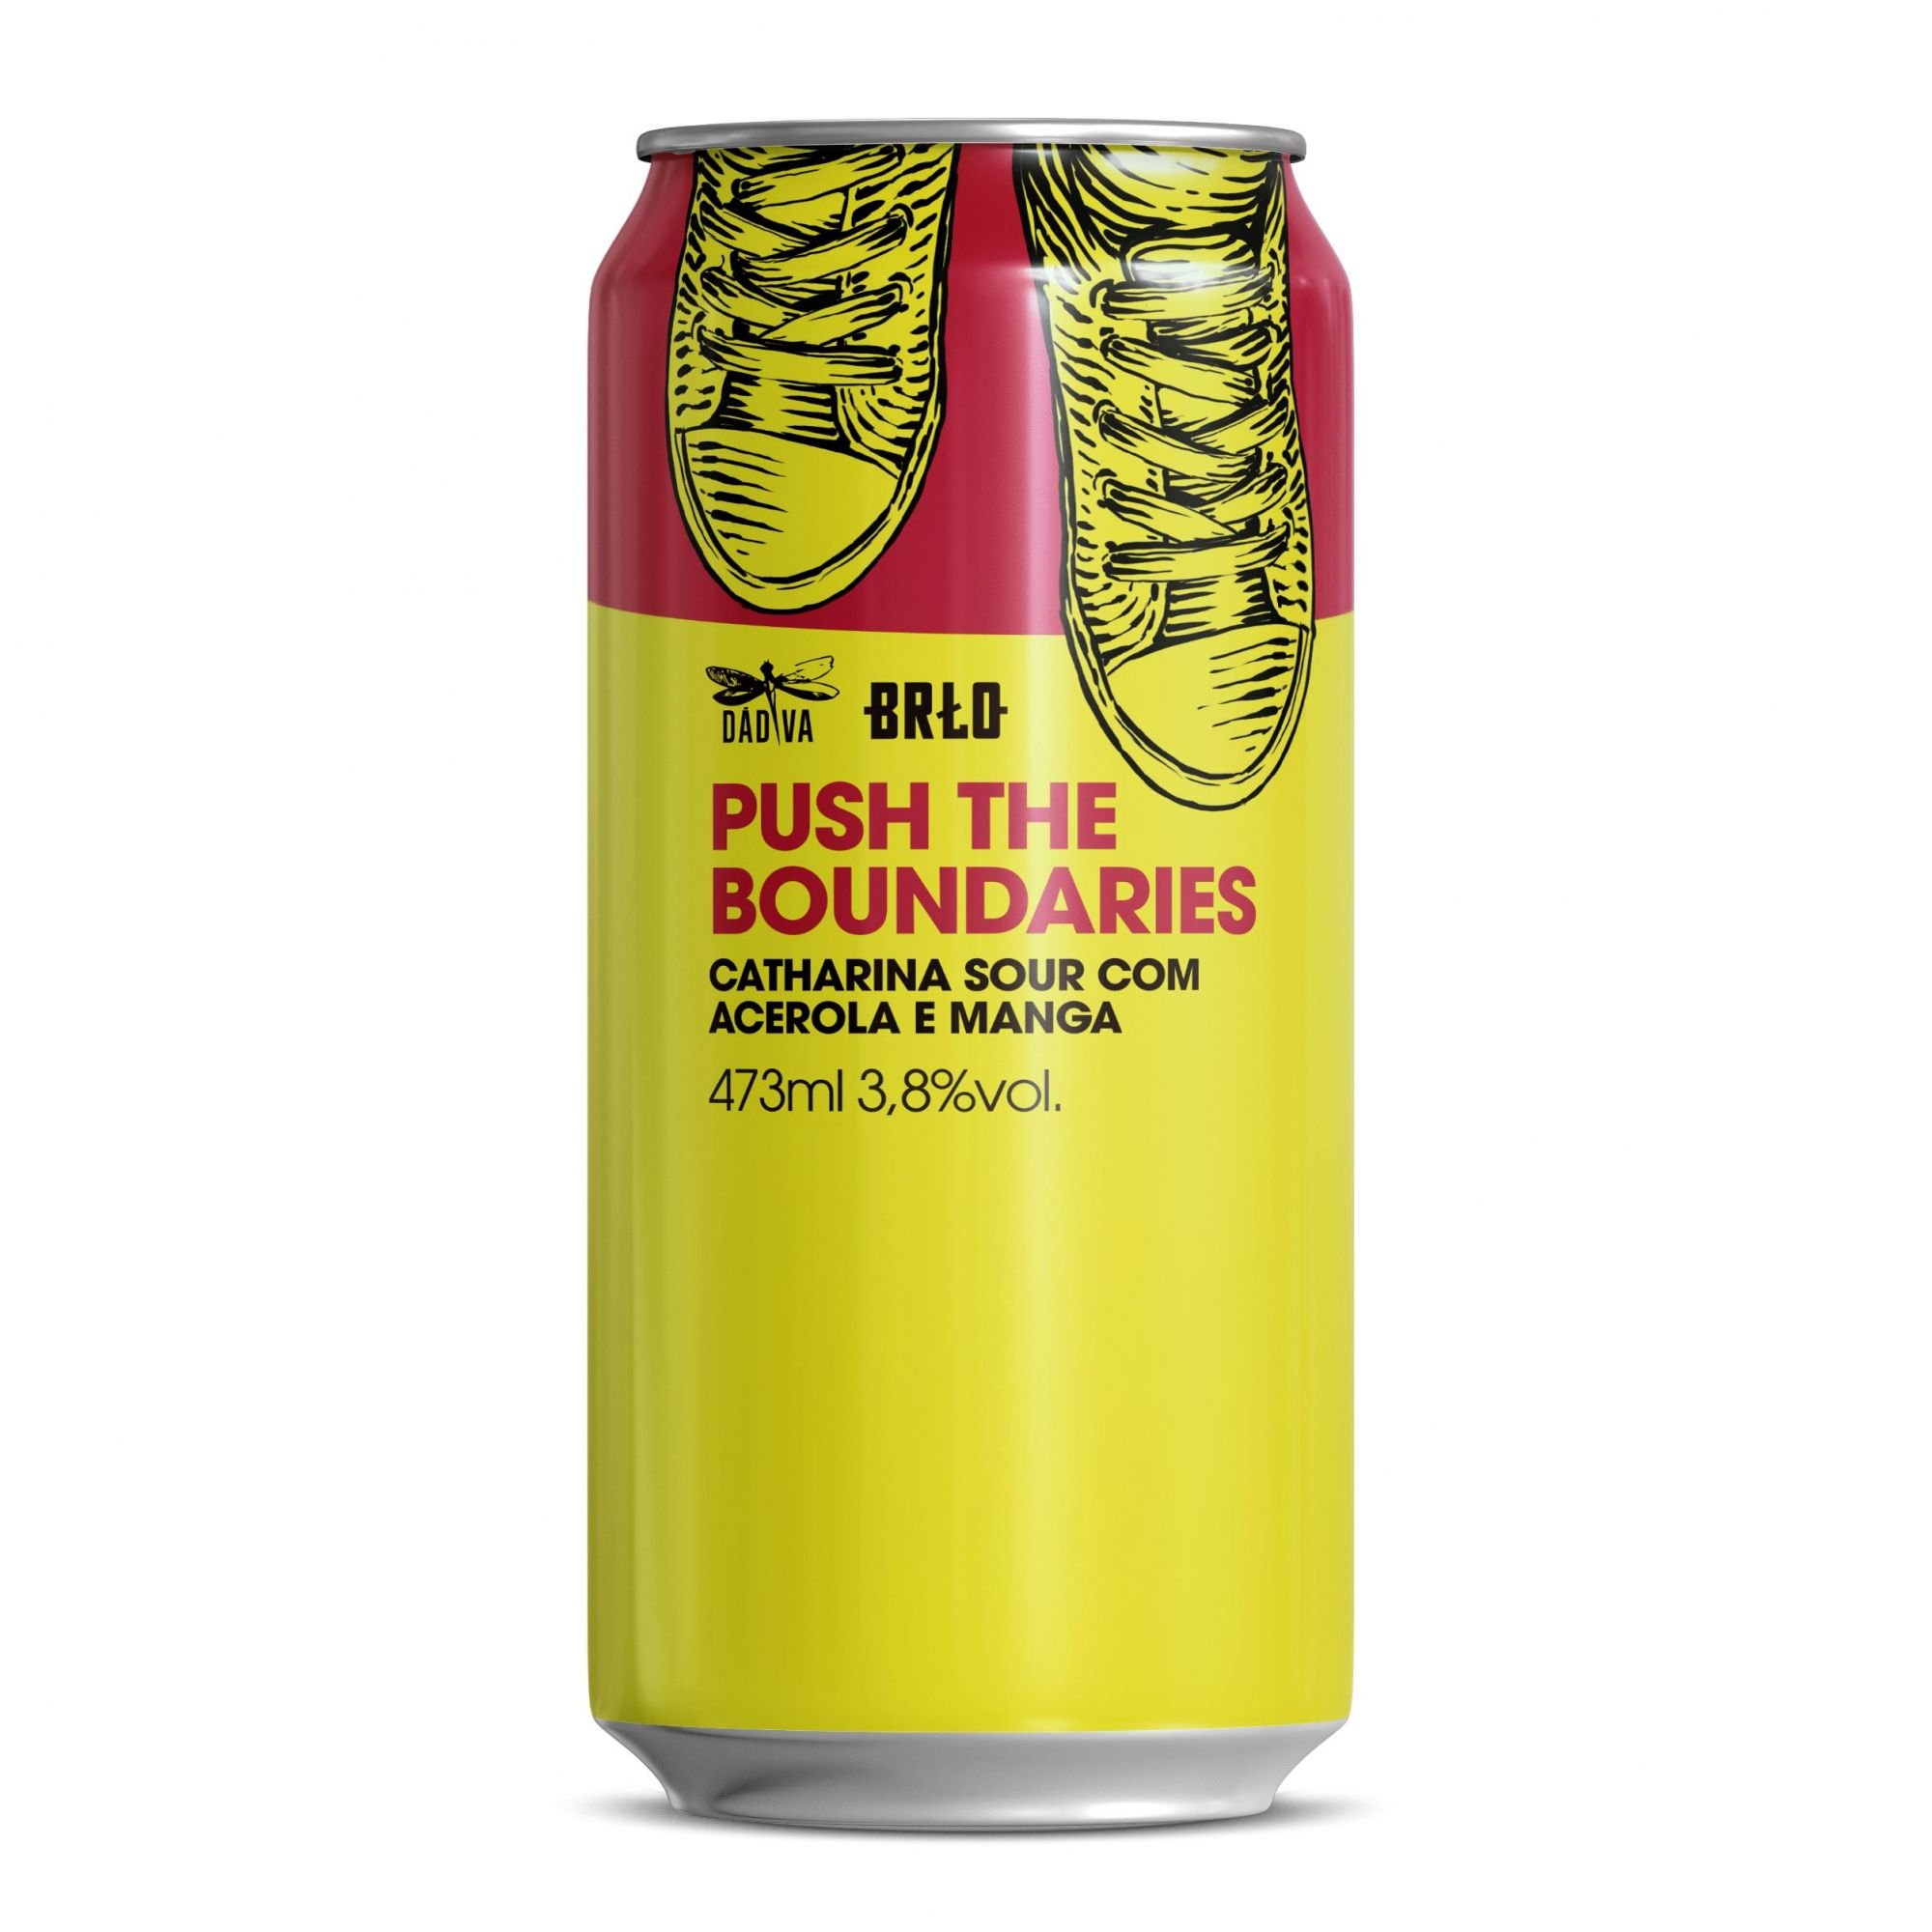 Dádiva e BRLO Push The Boundaries Catharina Sour com Acelora e Manga Lata 473ml